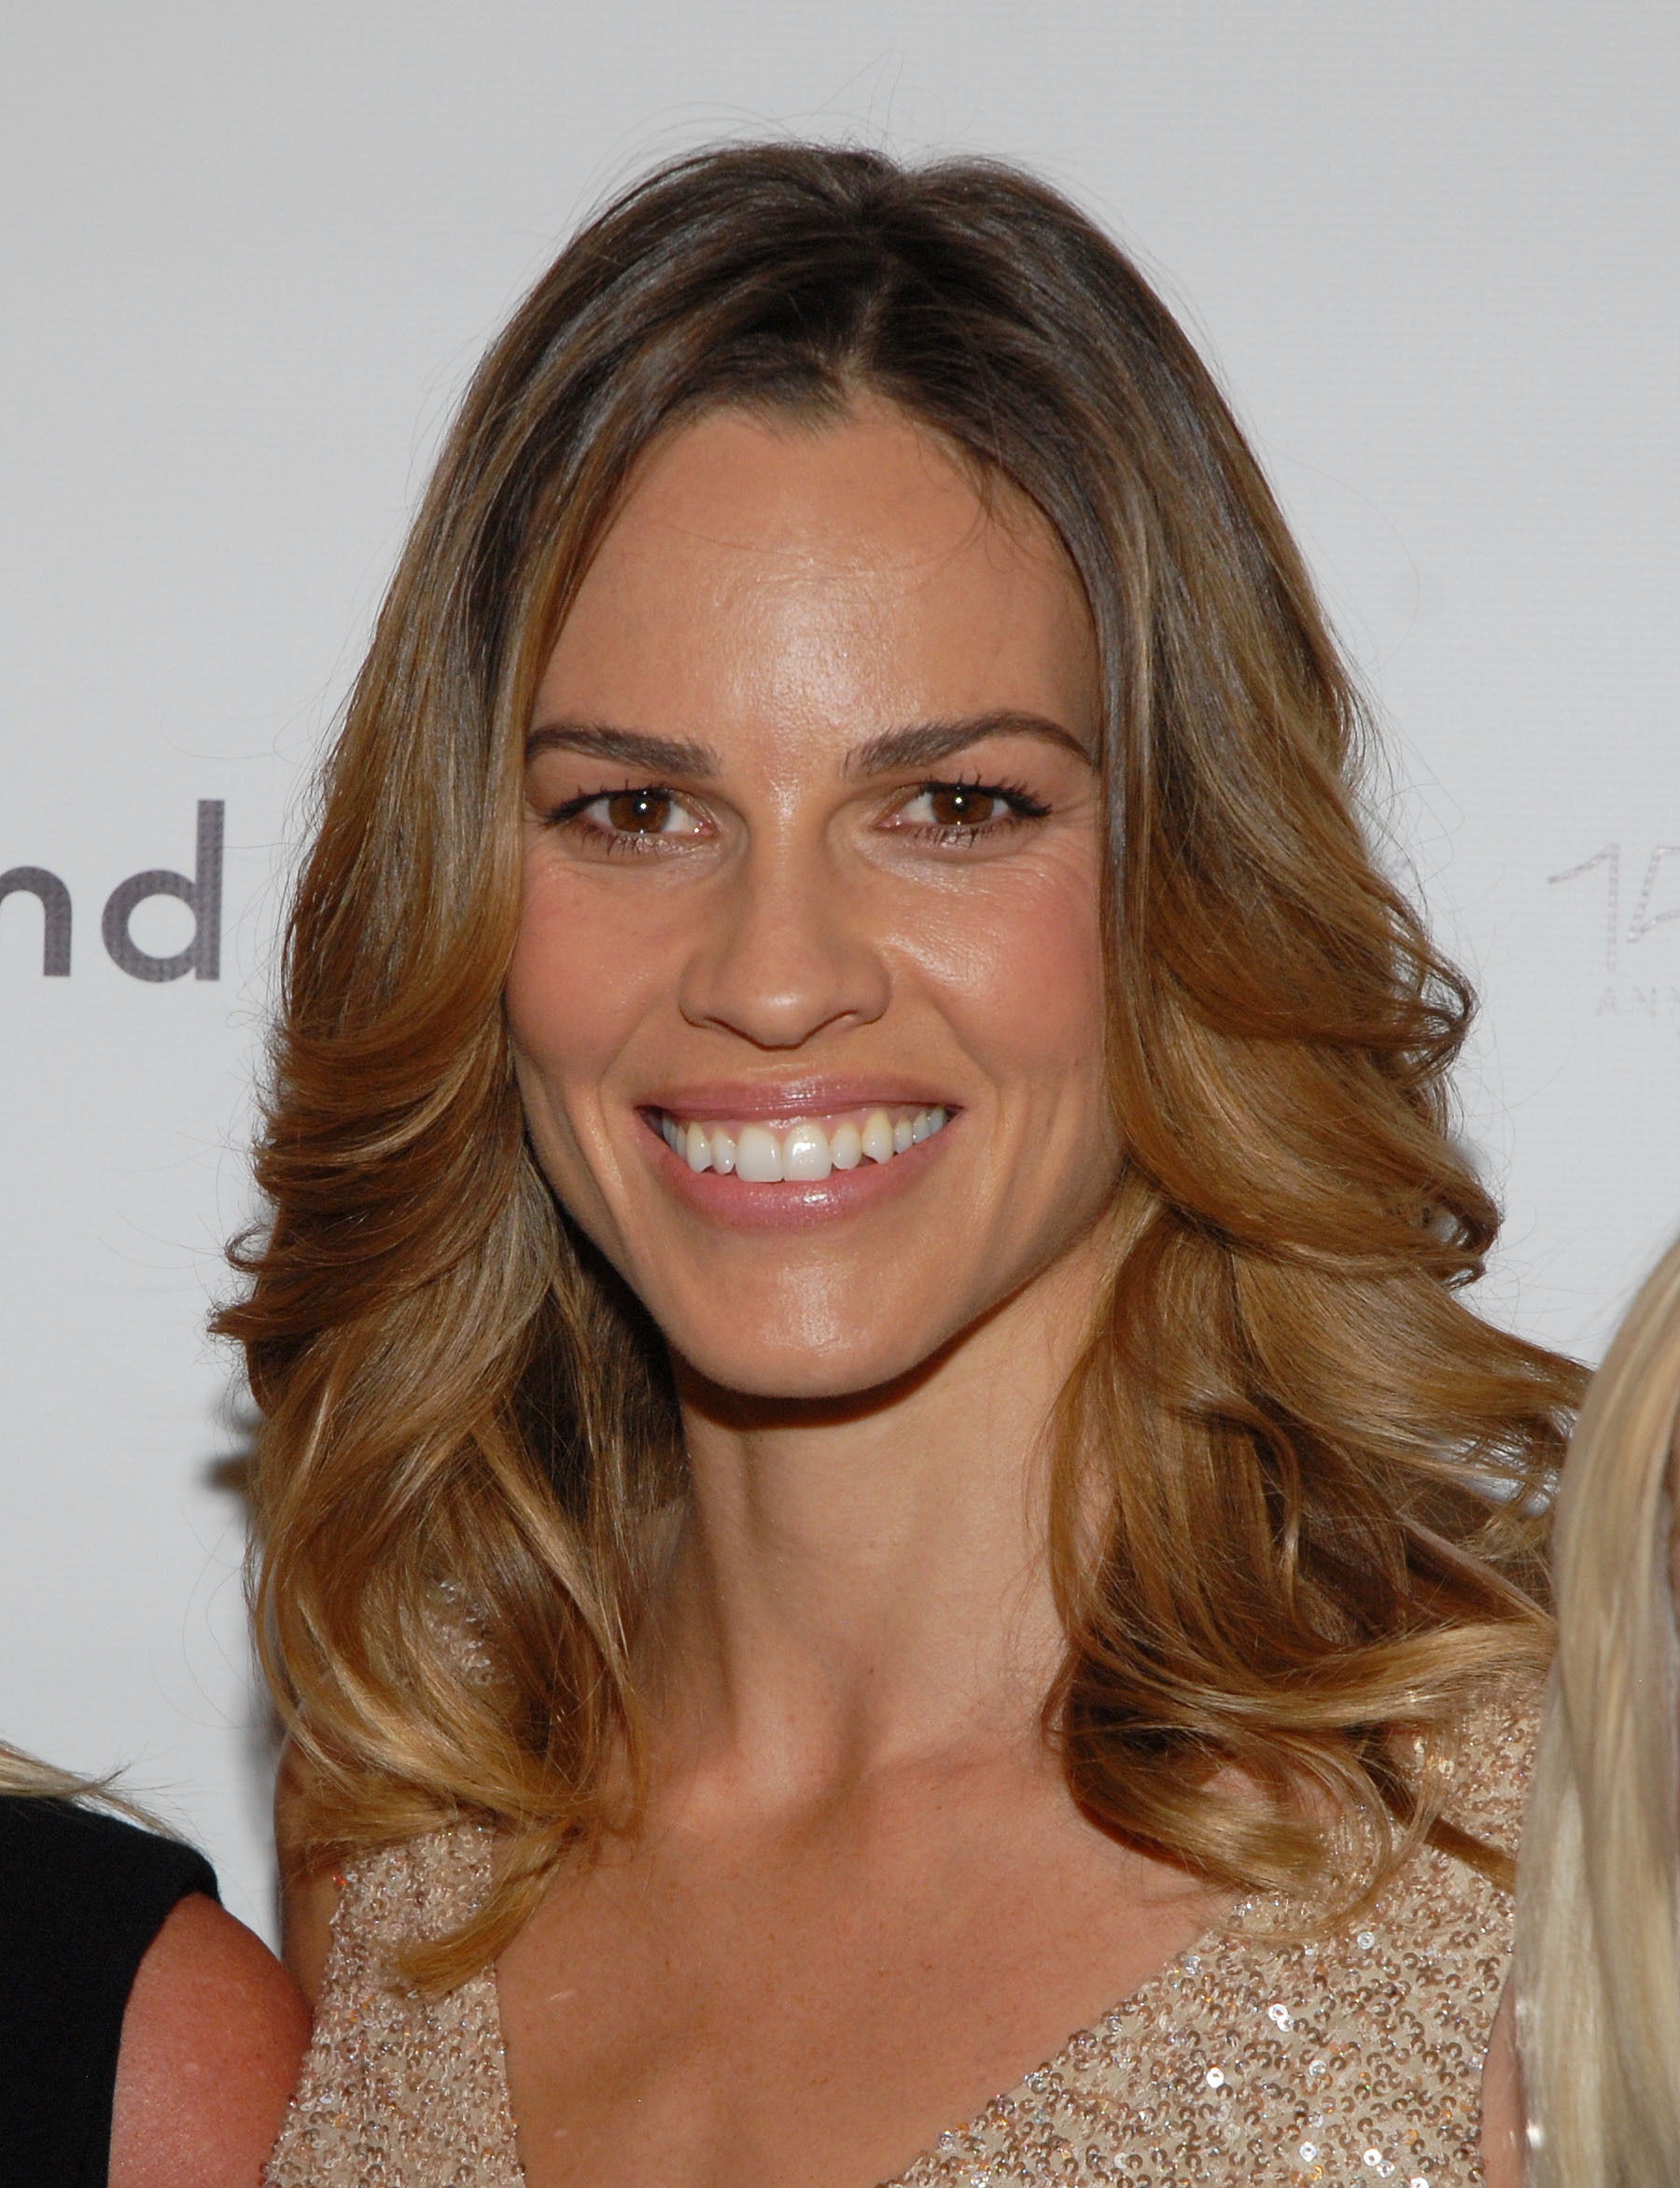 Hilary @ Mercedes-Benz Fashion Week Spring 2011 - Hilary Swank ...